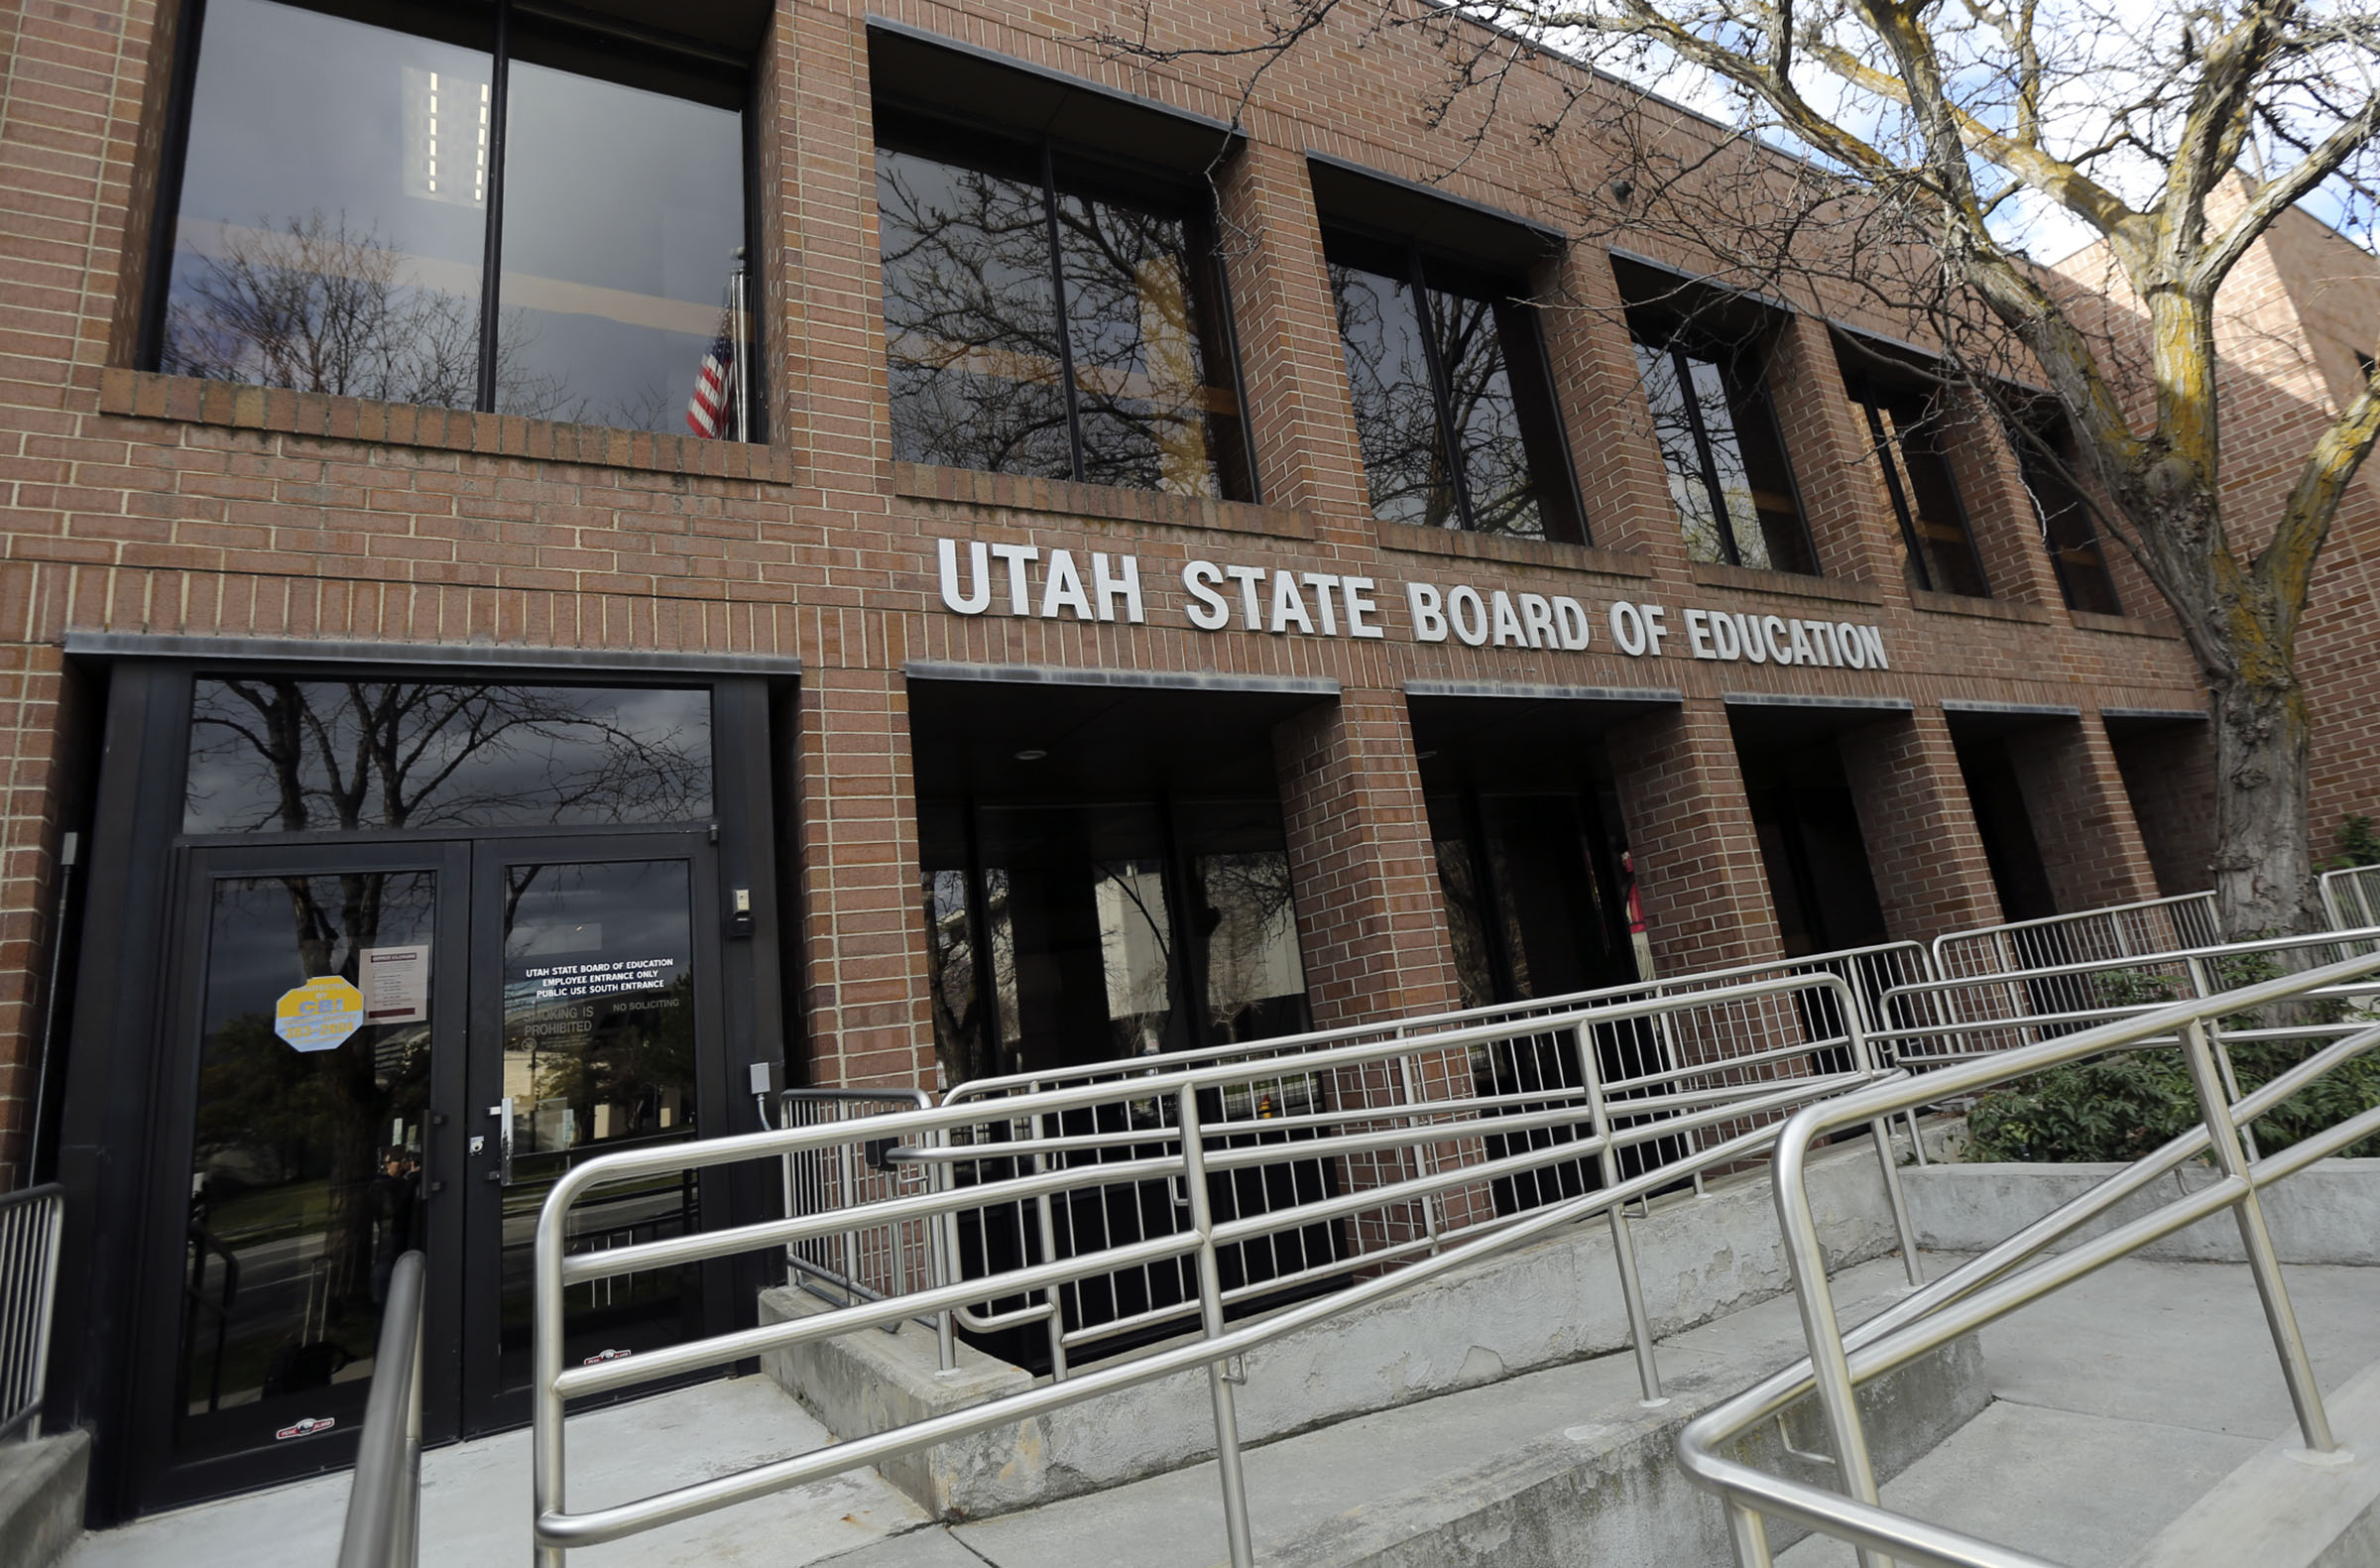 The Utah State Board of Education building in Salt Lake City is pictured on Tuesday, March 31, 2020.